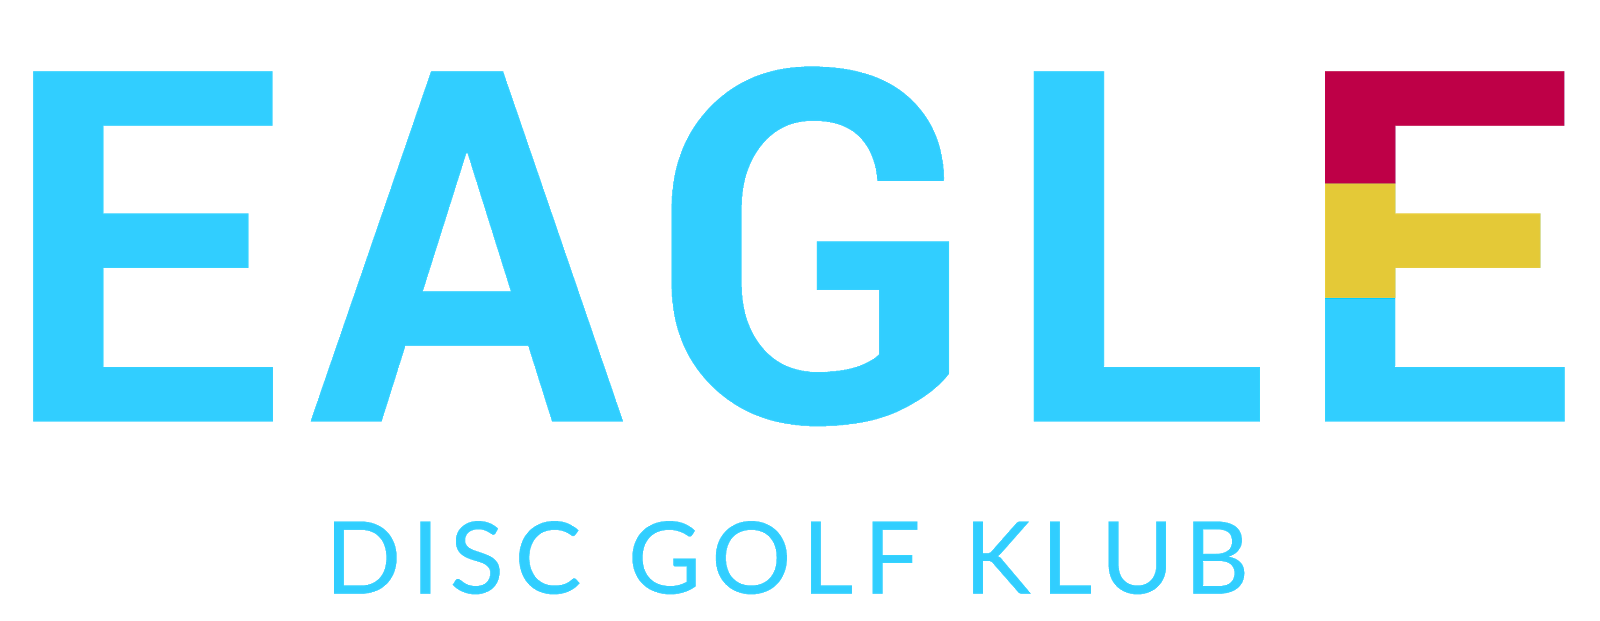 EAGLE Disc golf klub logo